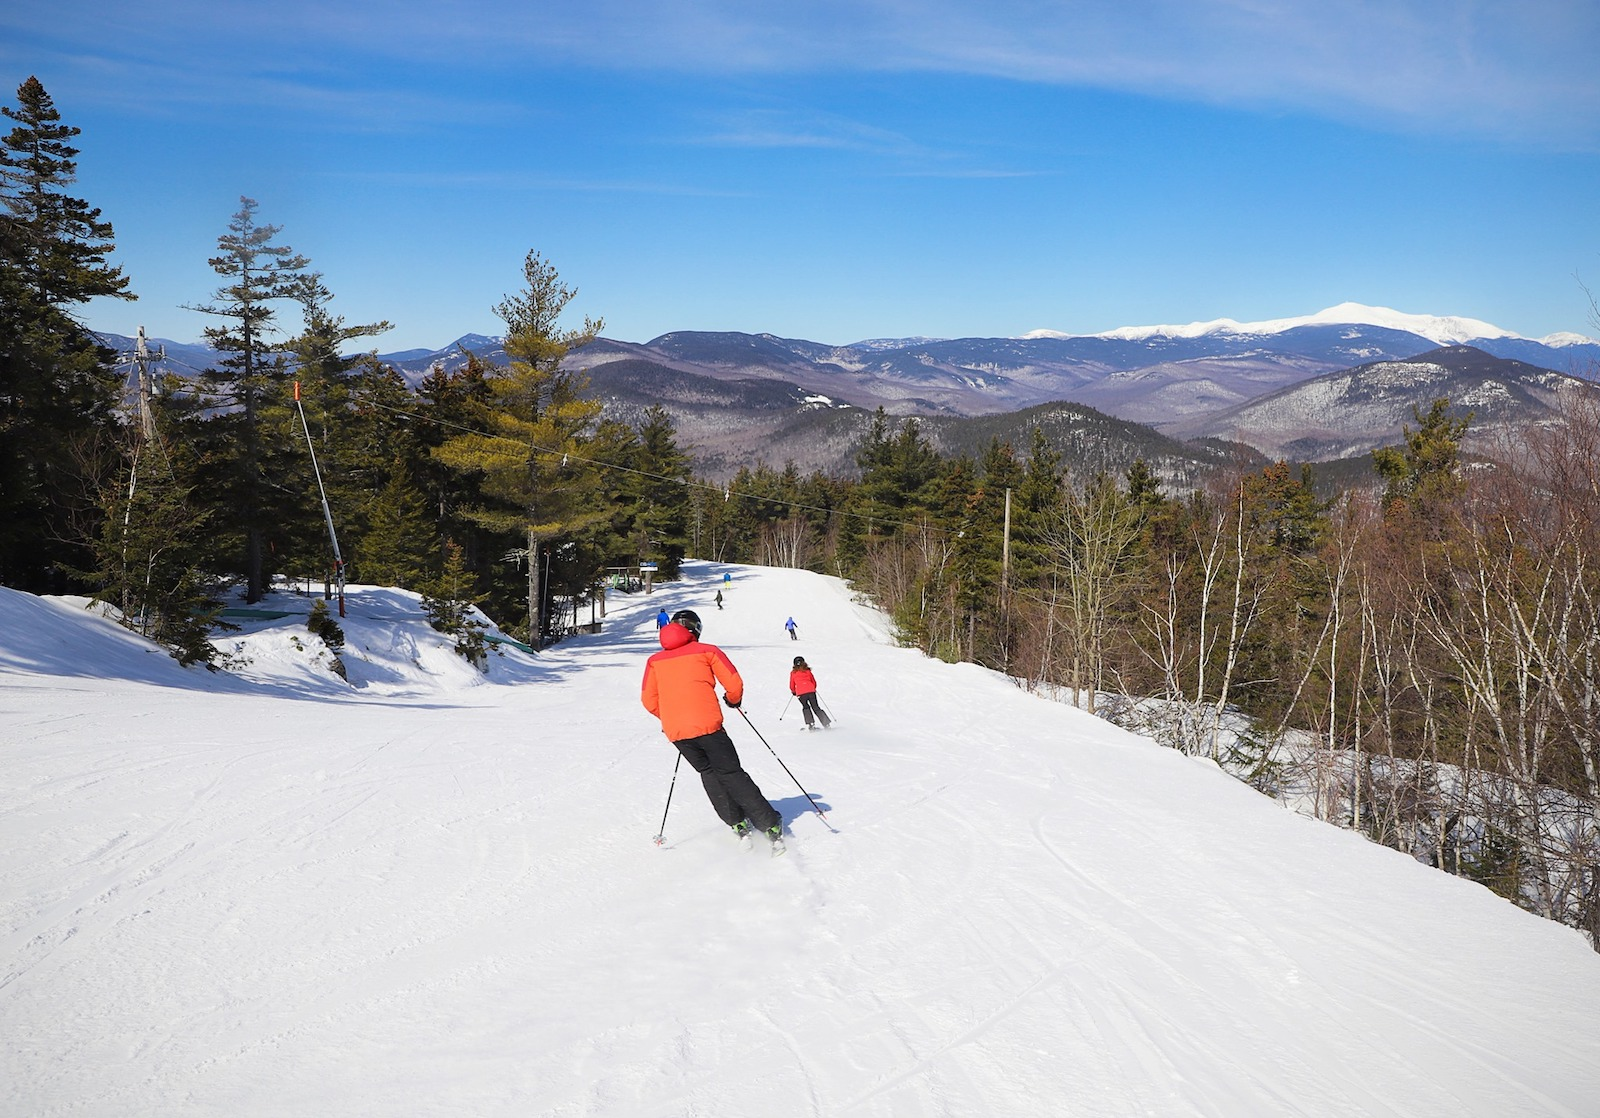 Image of skiers on the slopes at Attitash Mountain Resort in New Hampshire